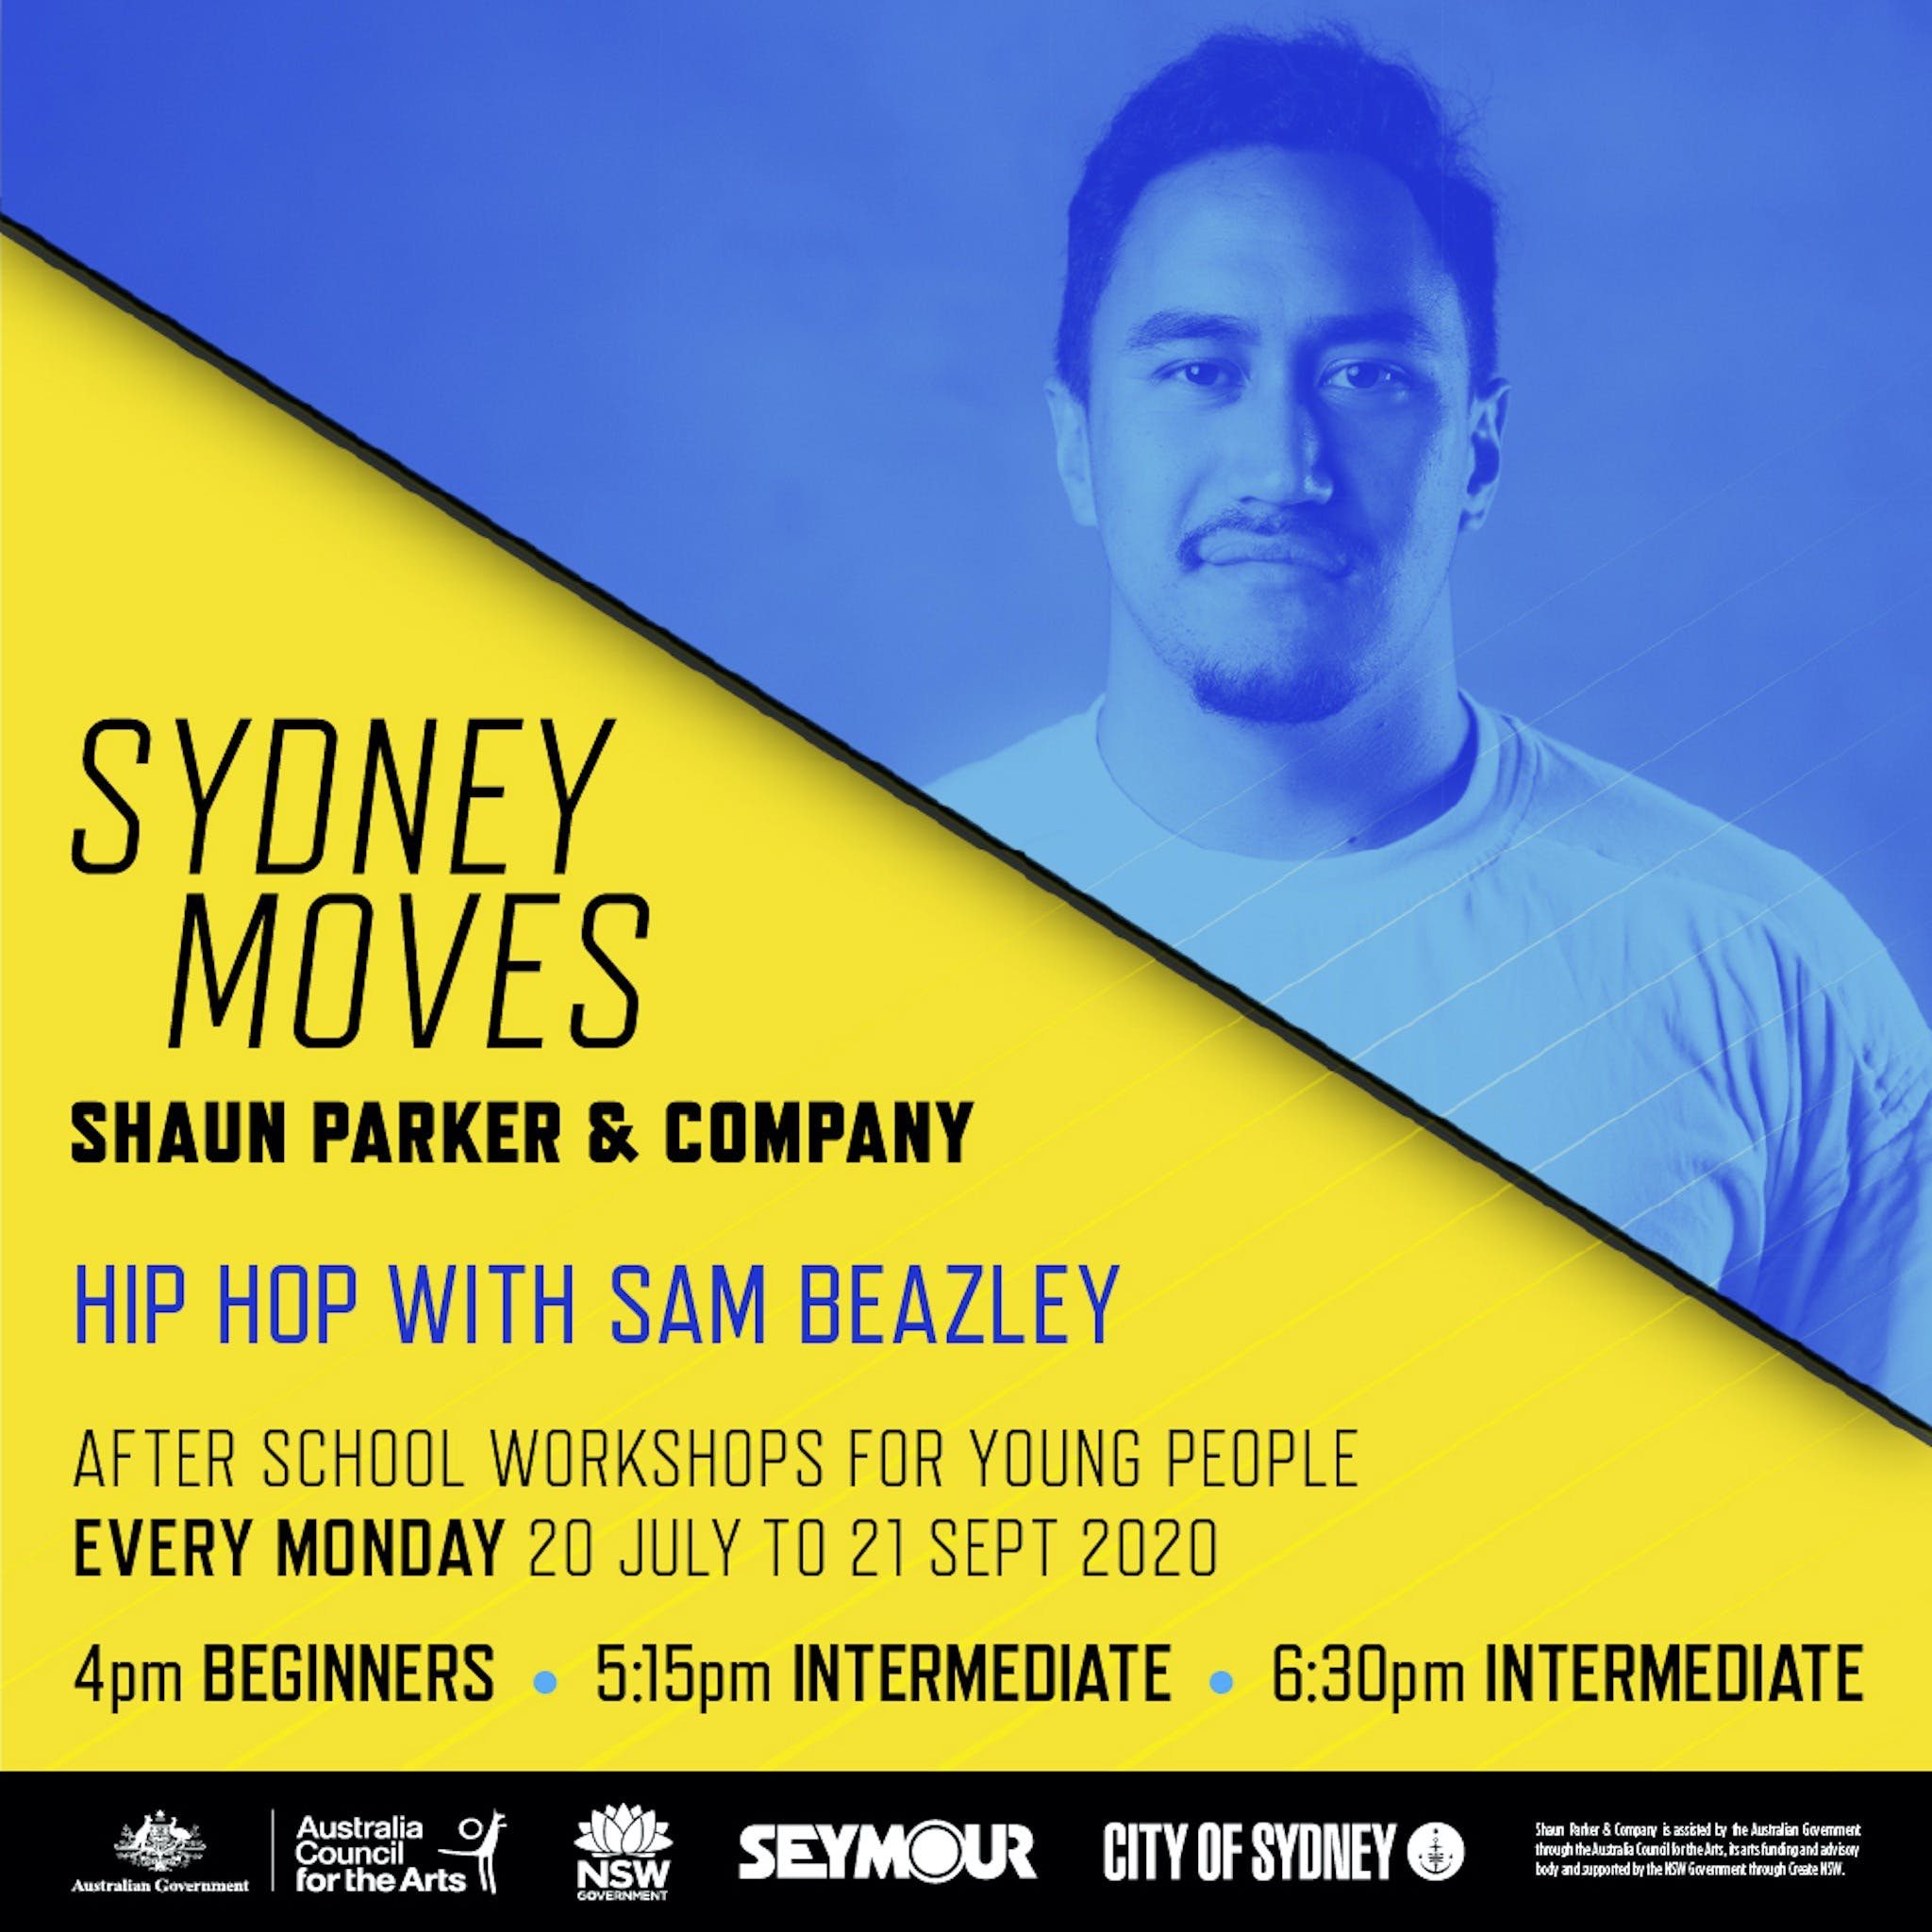 Sydney Moves - Beginners Hip Hop with Sam Beazley - VIC Tourism